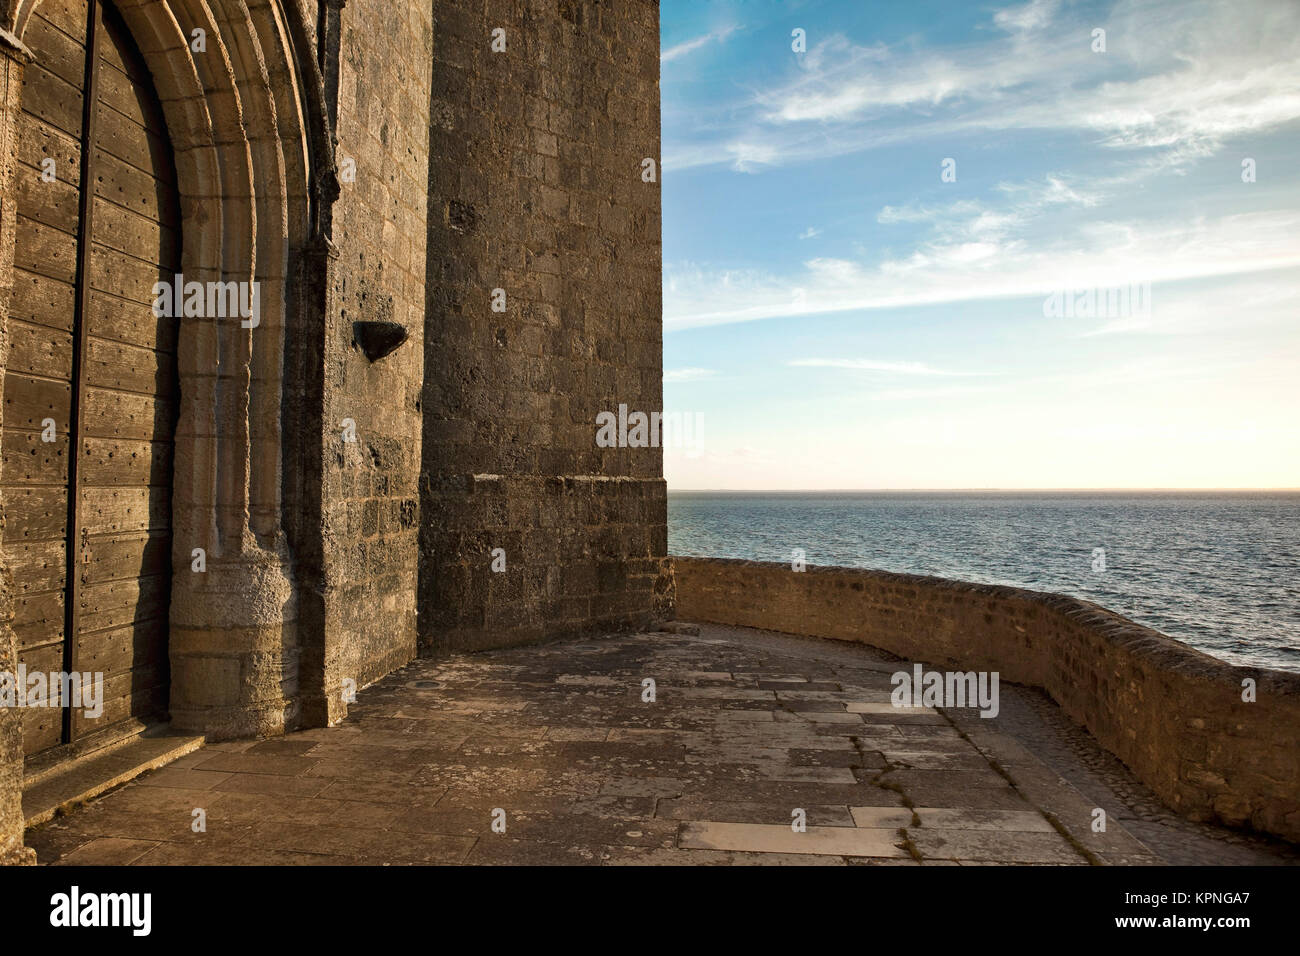 Church and sea - Stock Image